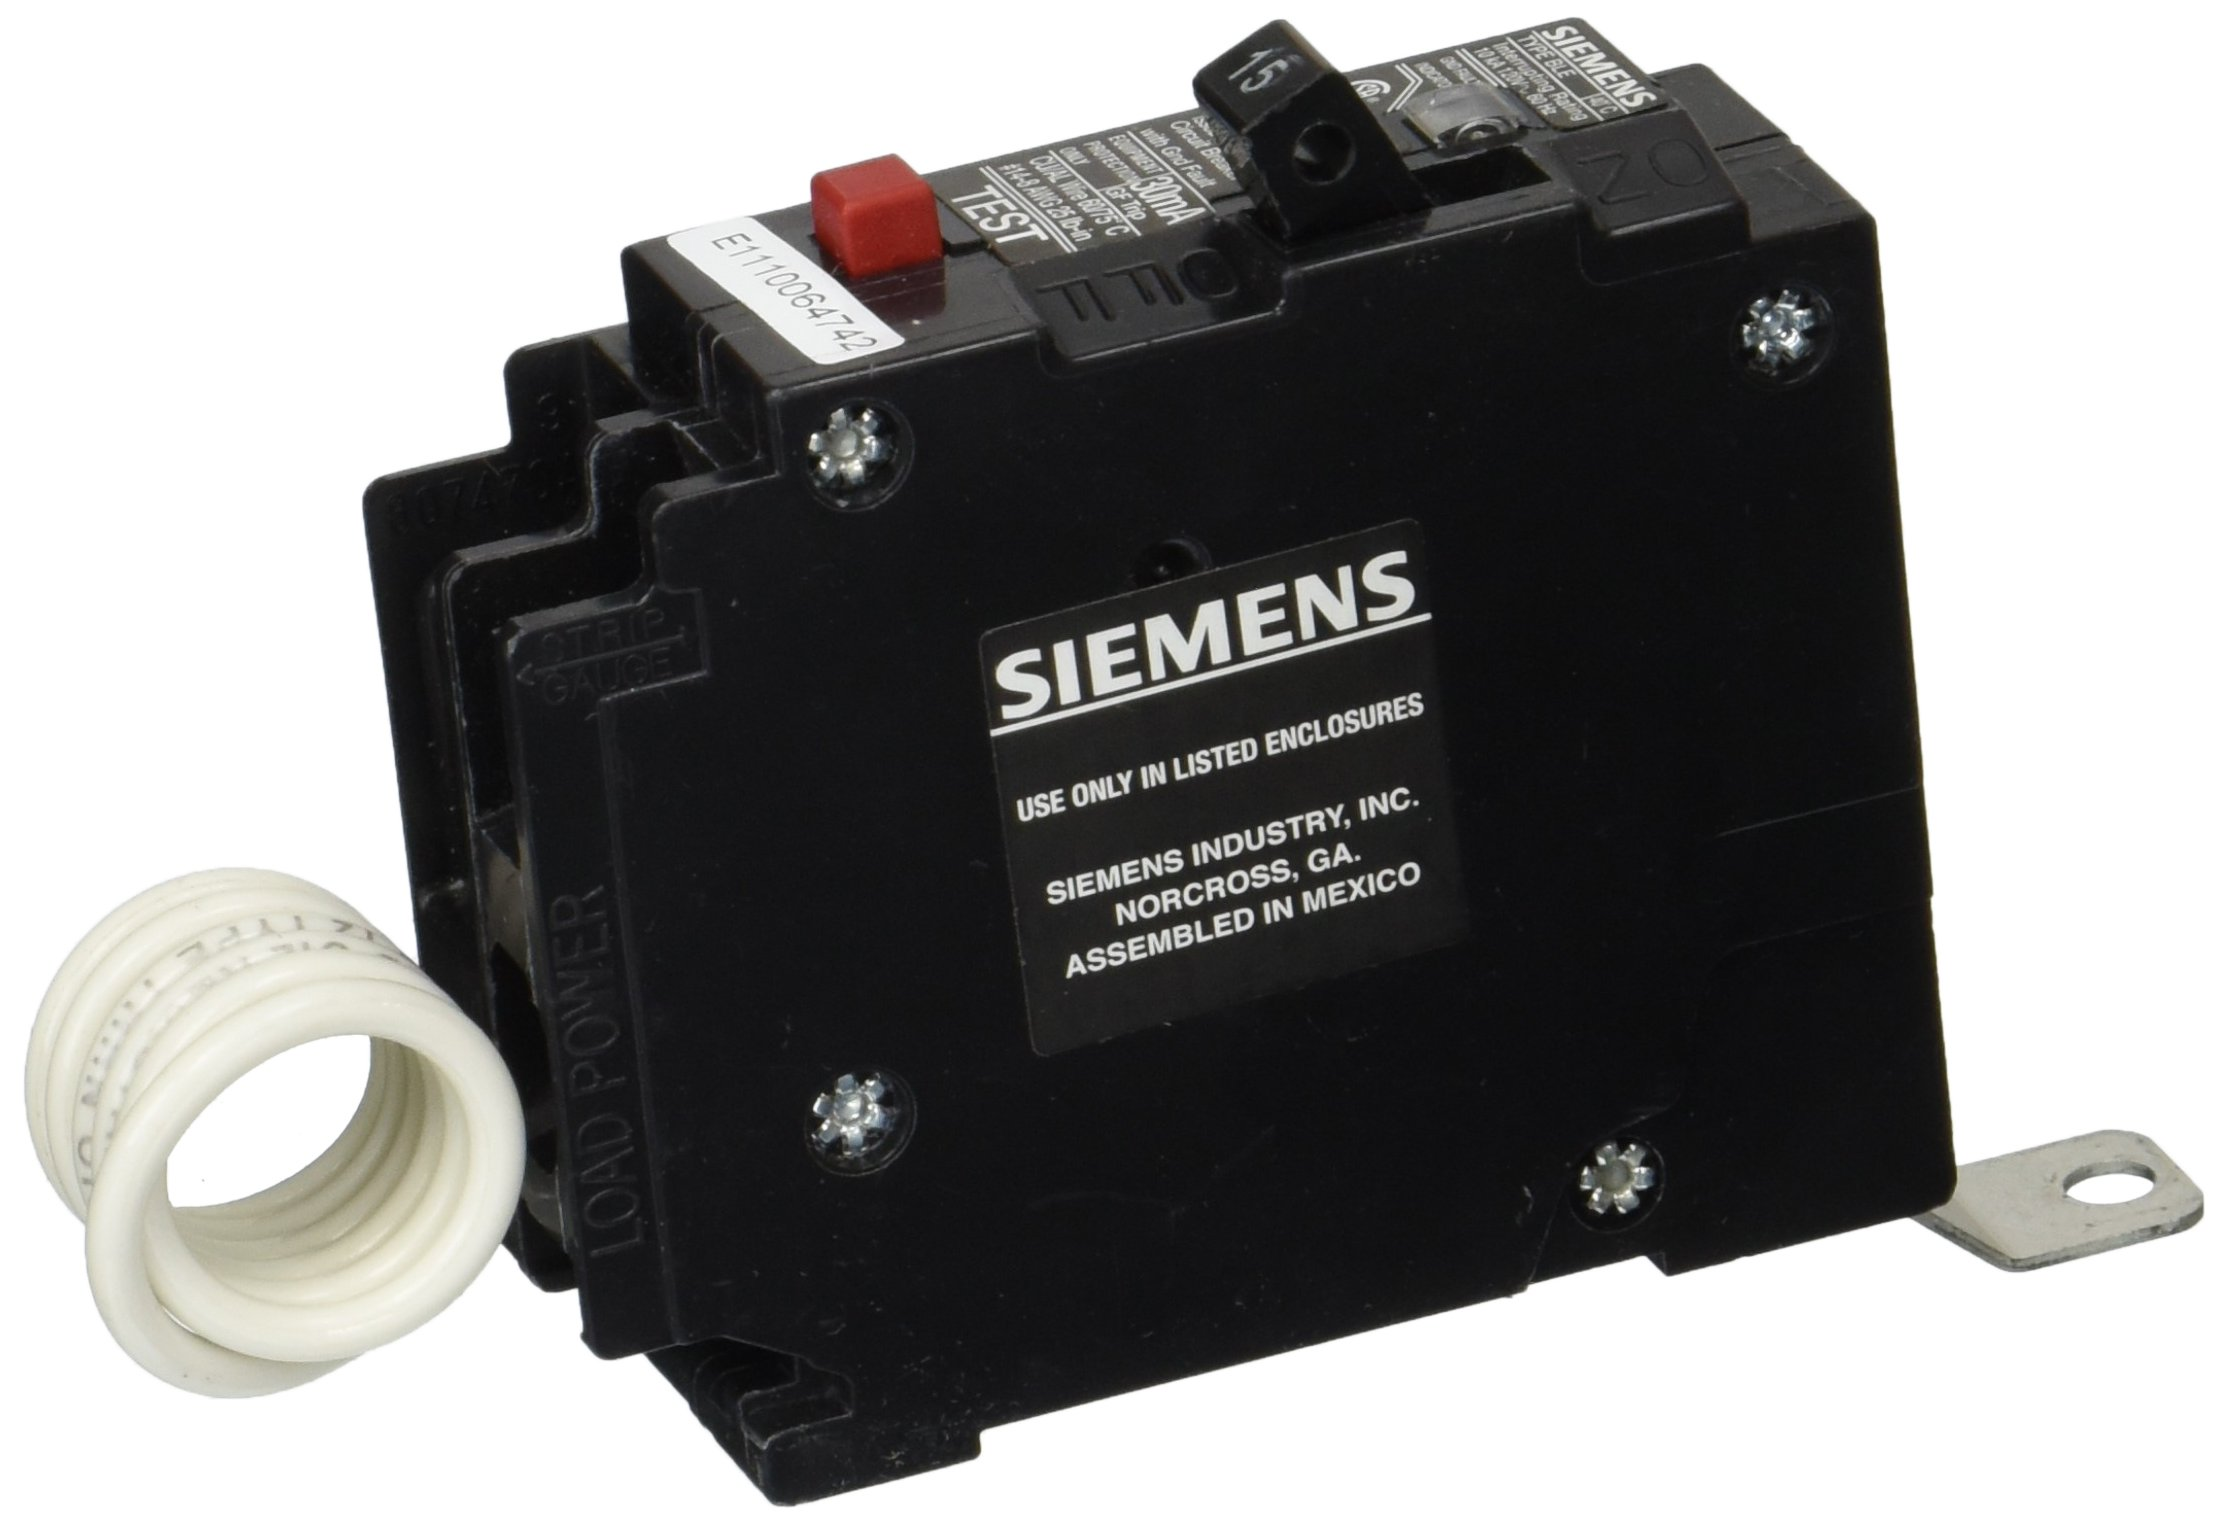 Siemens BE115 15-Amp Single Pole 120-Volt10KAIC Ground Fault Circuit interrupter